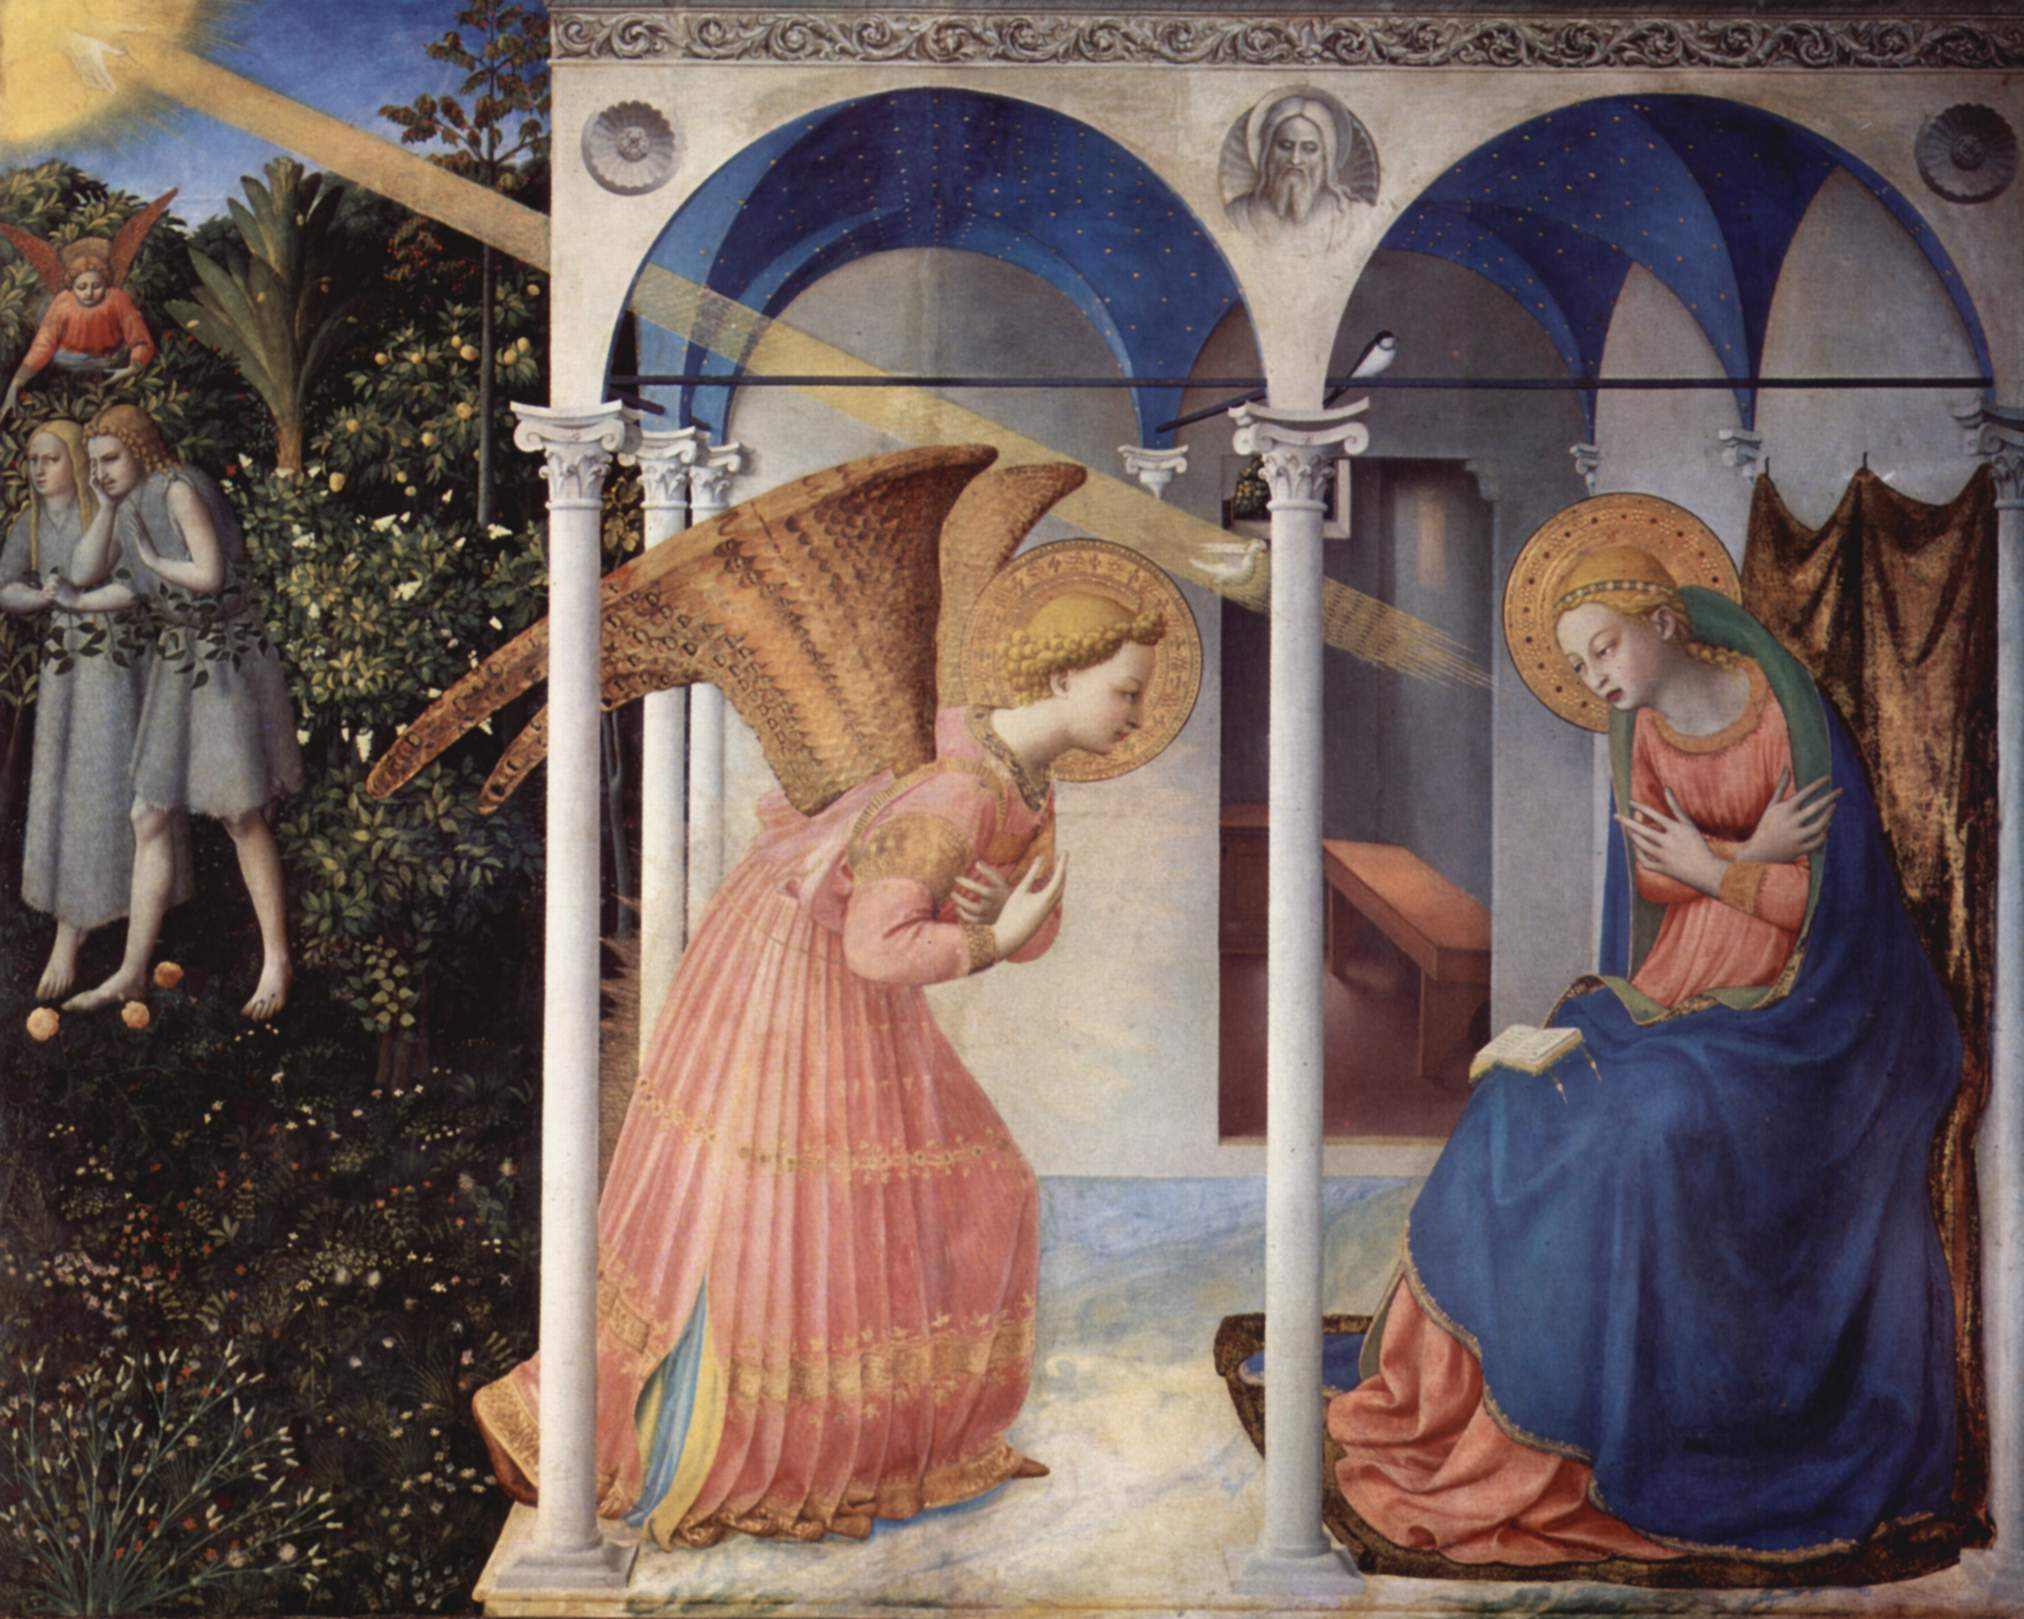 轉載自https://i0.wp.com/upload.wikimedia.org/wikipedia/commons/2/28/Fra_Angelico_095.jpg